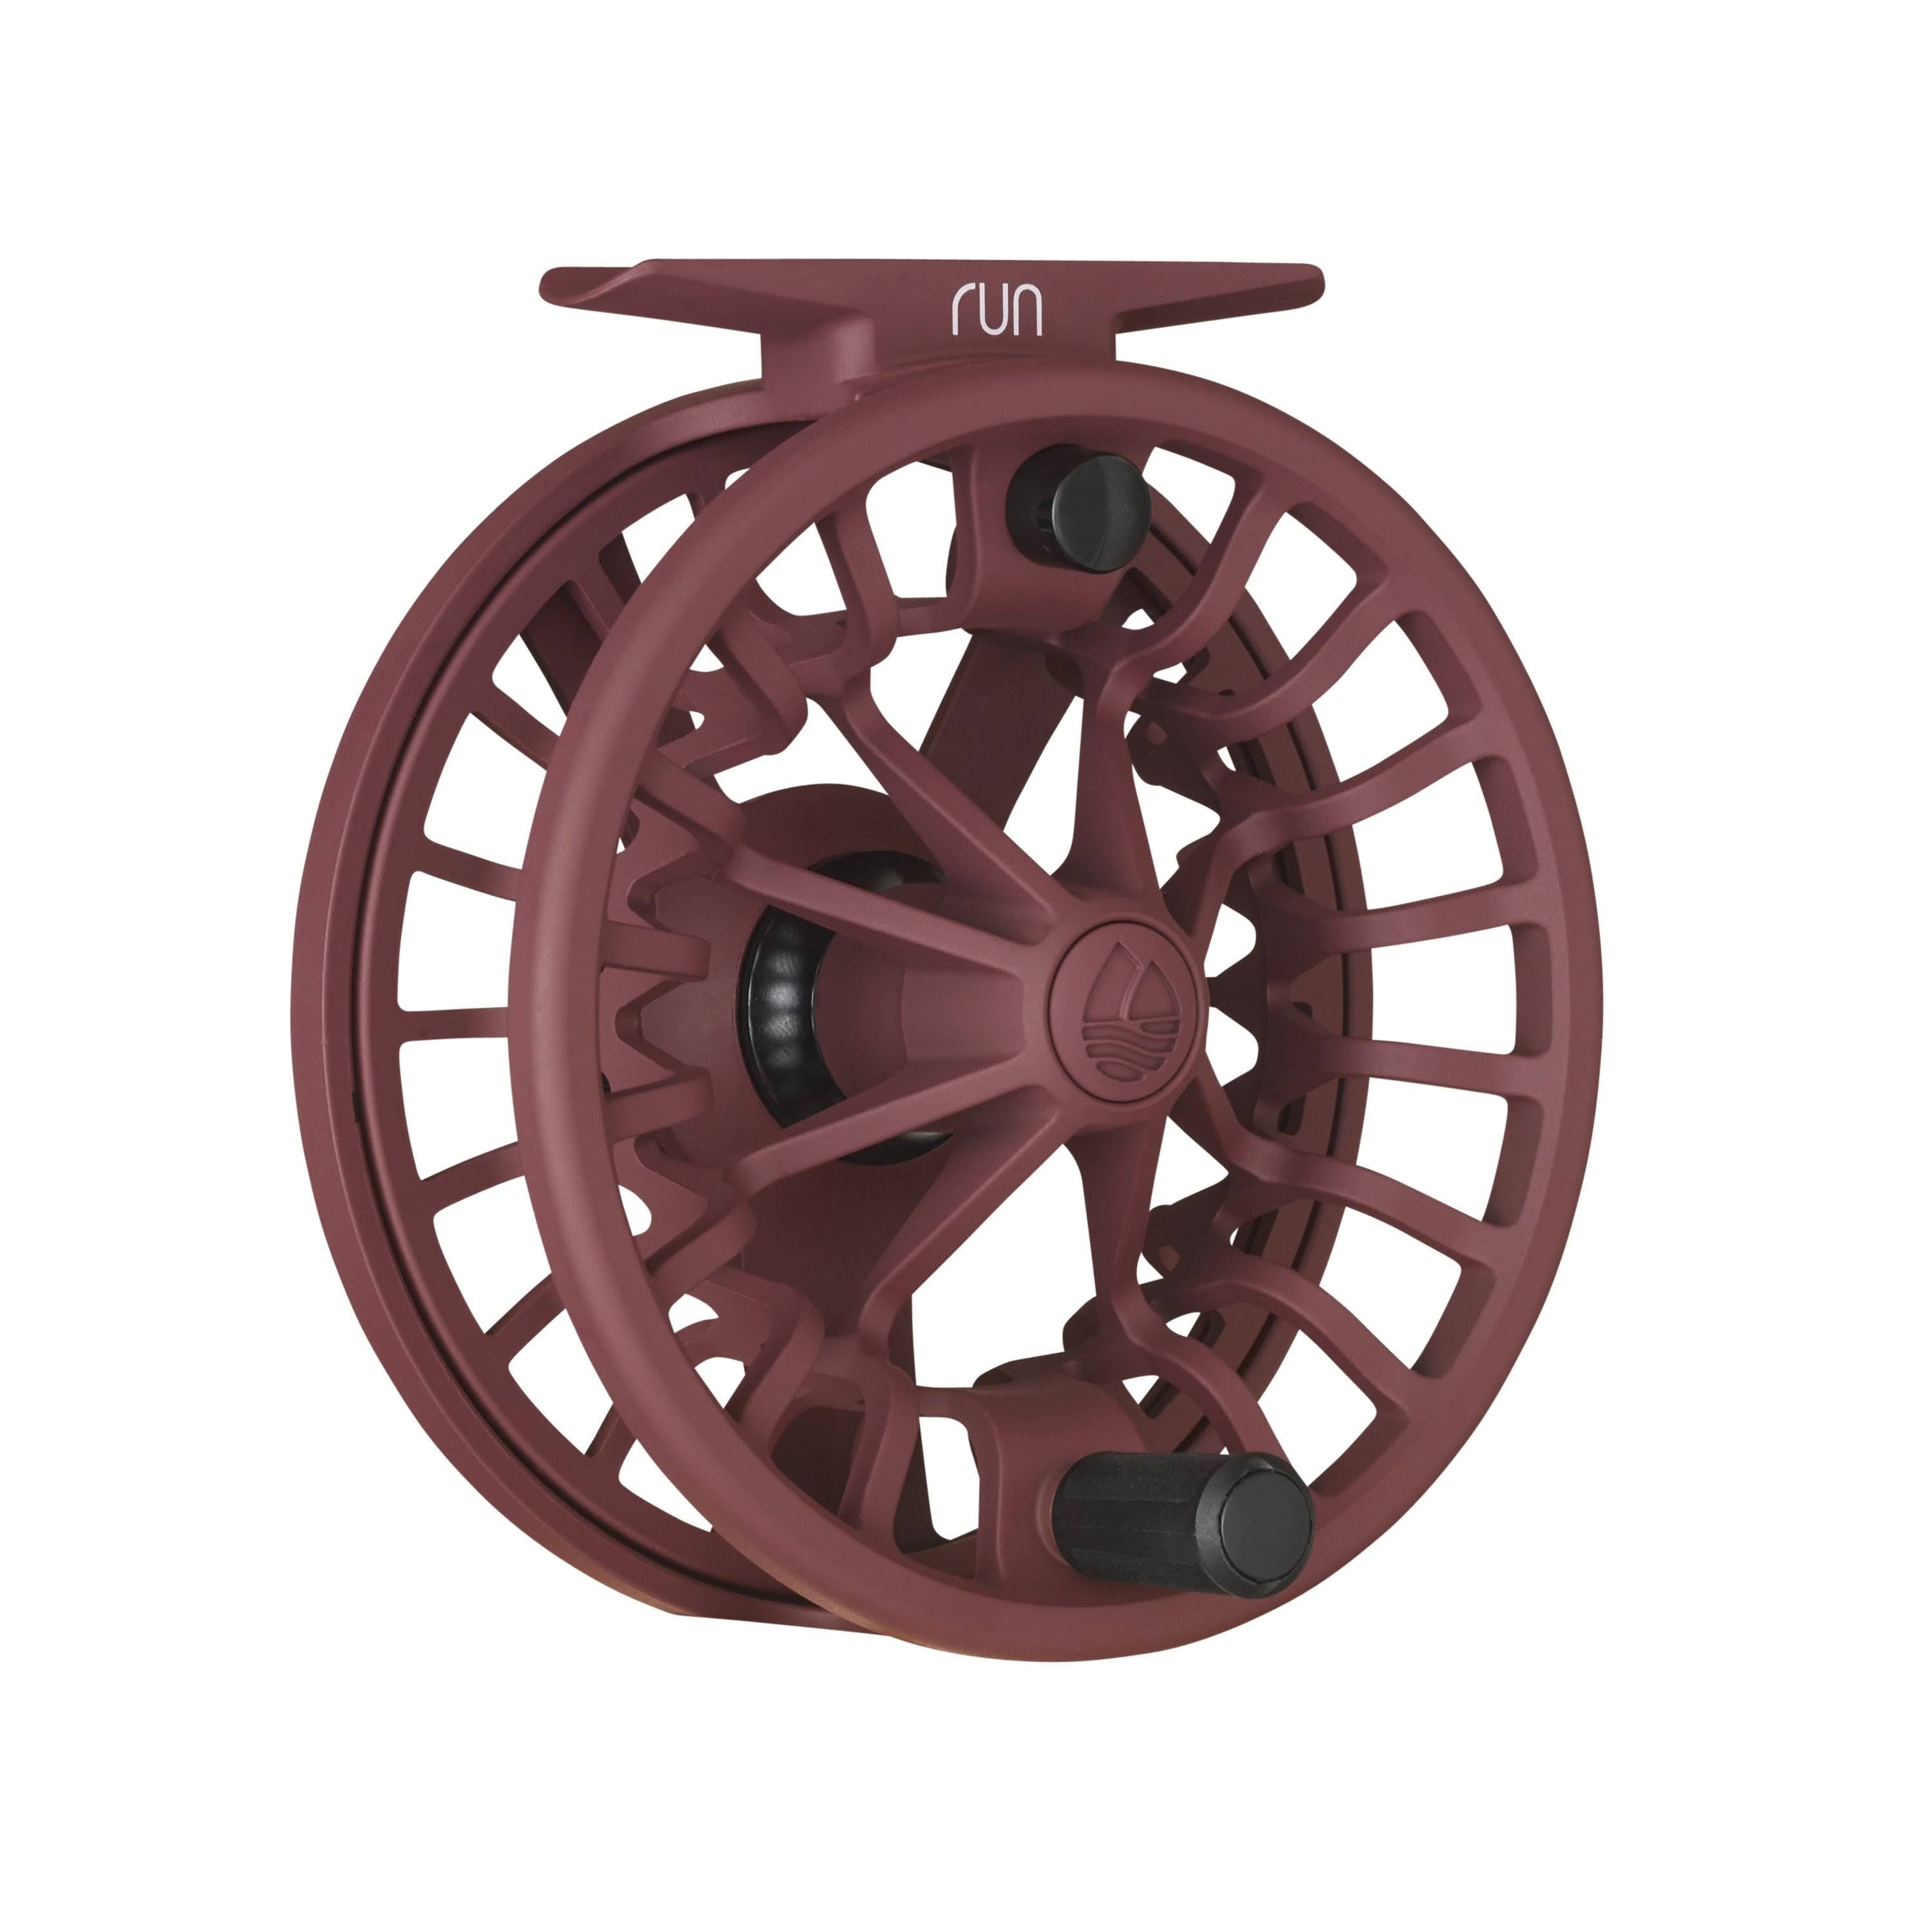 Redington Run Fly Reel - Burgundy - 7/8